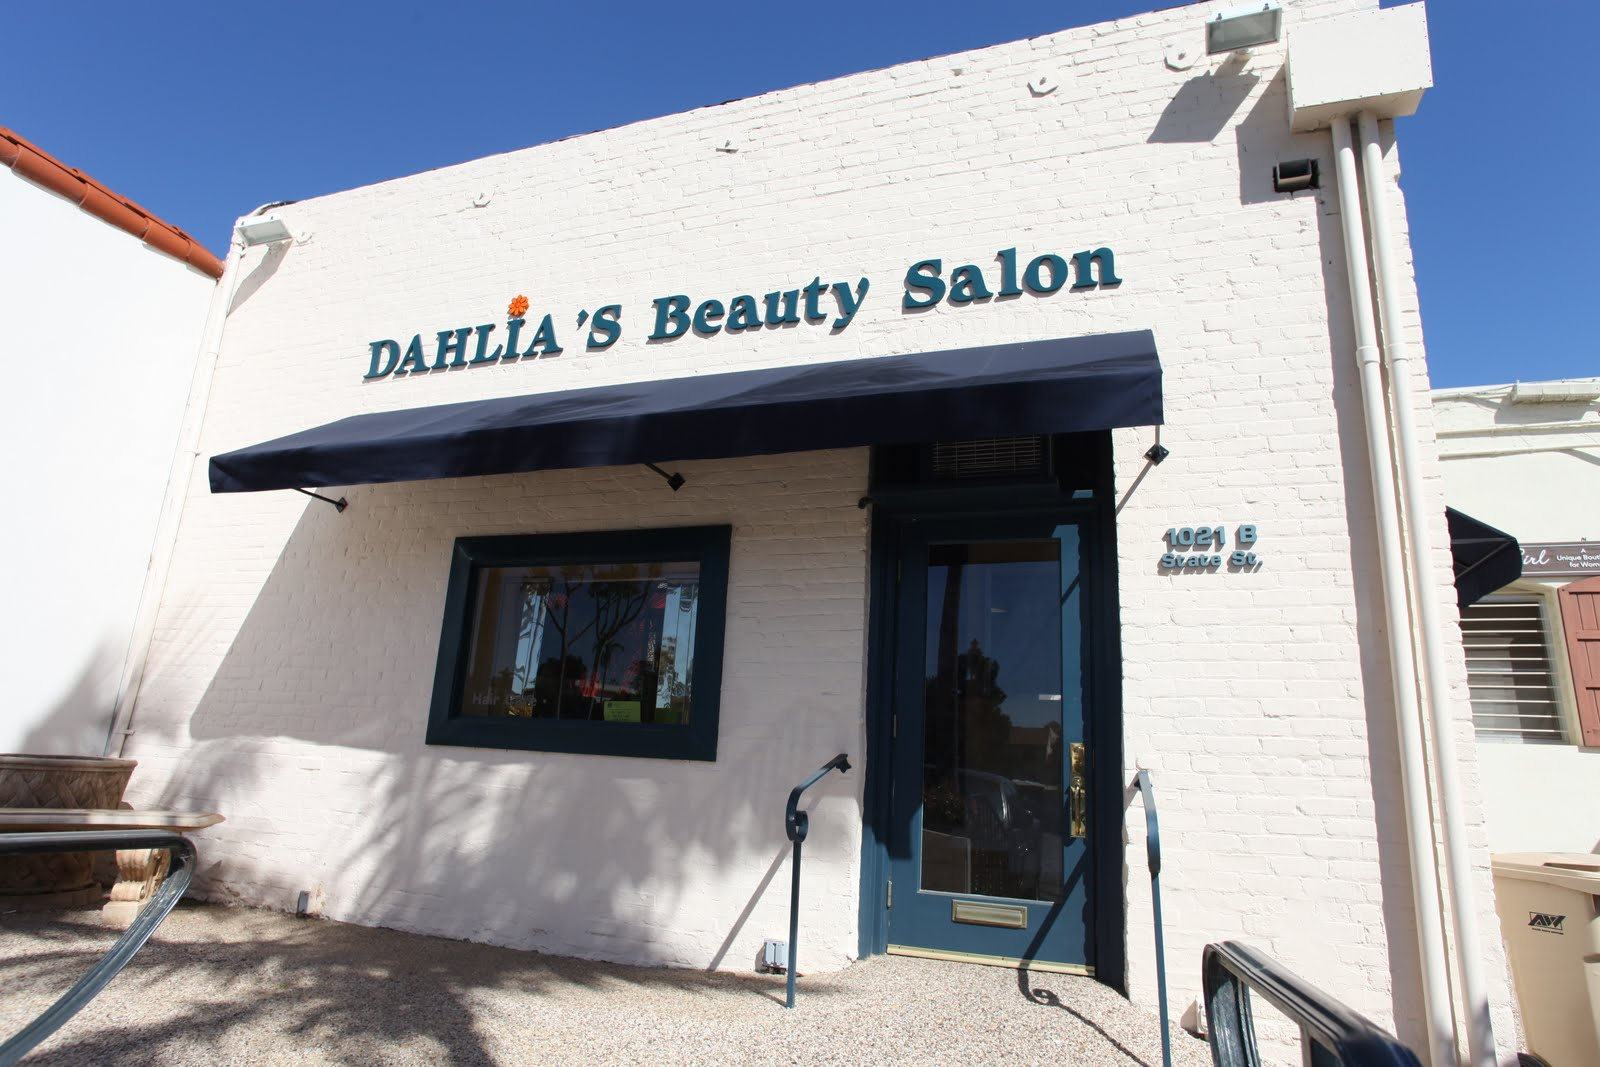 We Just Did A Little Work At The New Location For Dahlias Beauty Salon Which Opened Last Week They Seem Like Real Good People So I Thought Wed